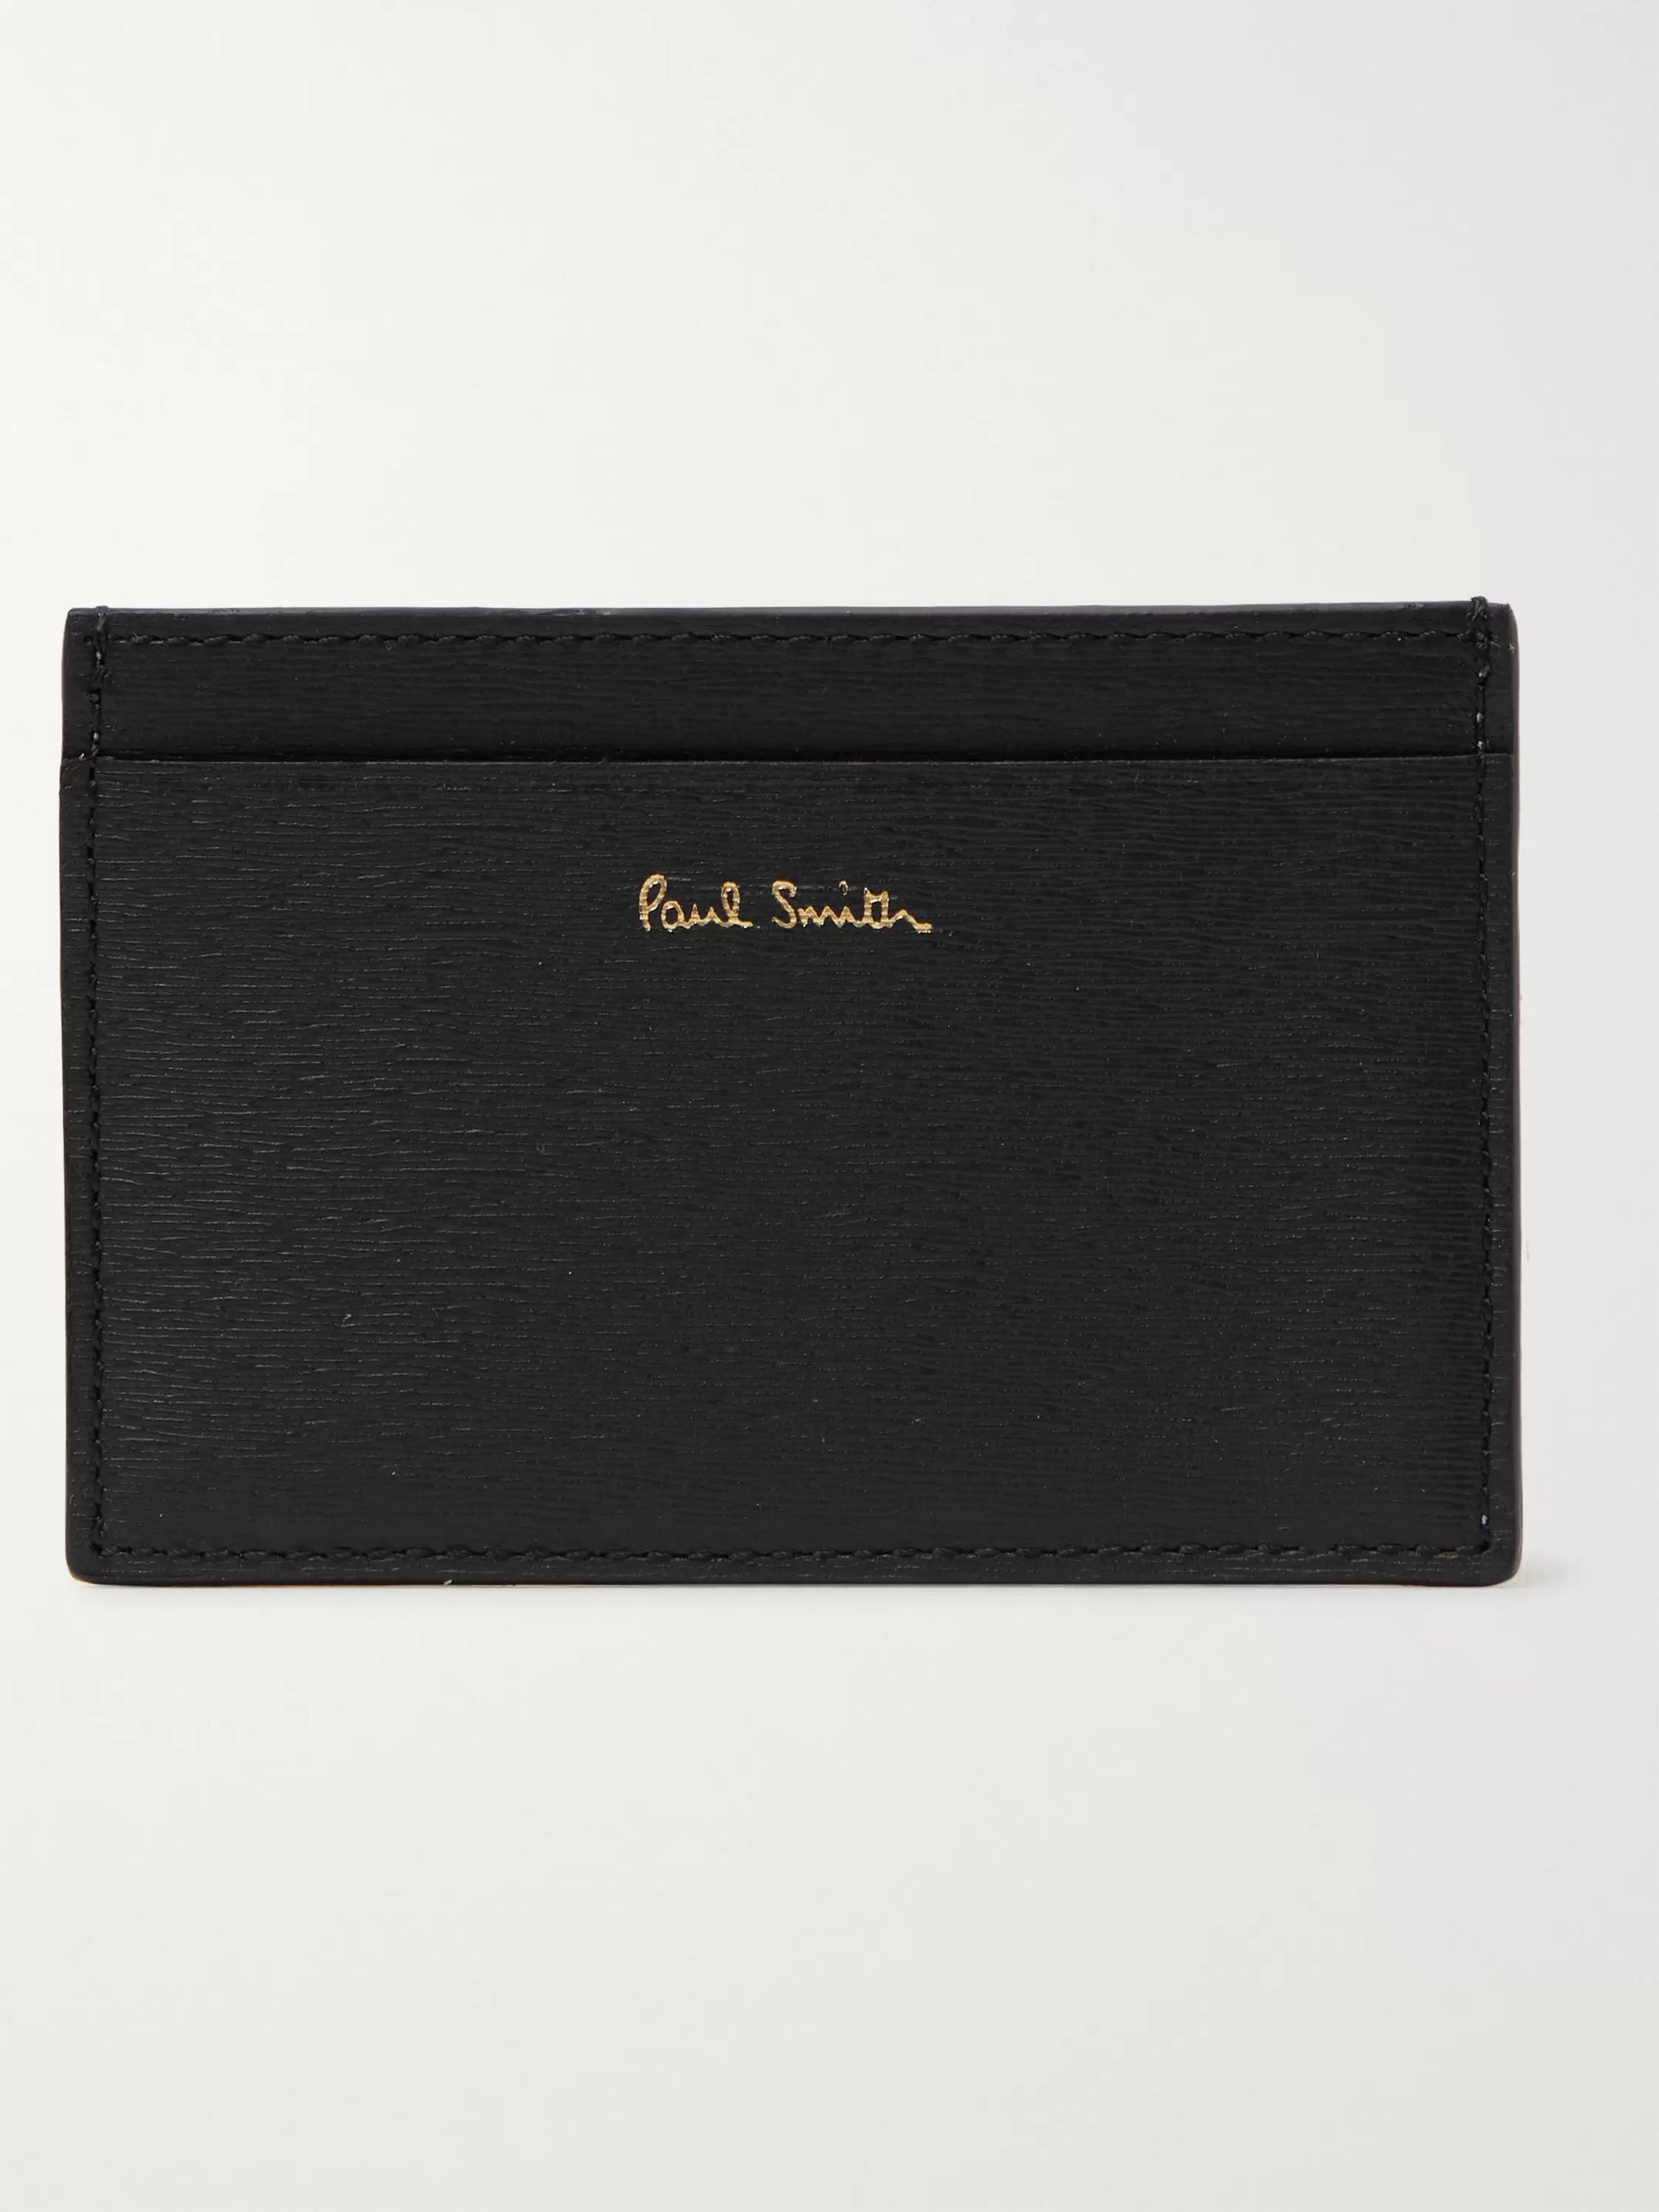 Paul Smith Colour-Block Textured-Leather Cardholder